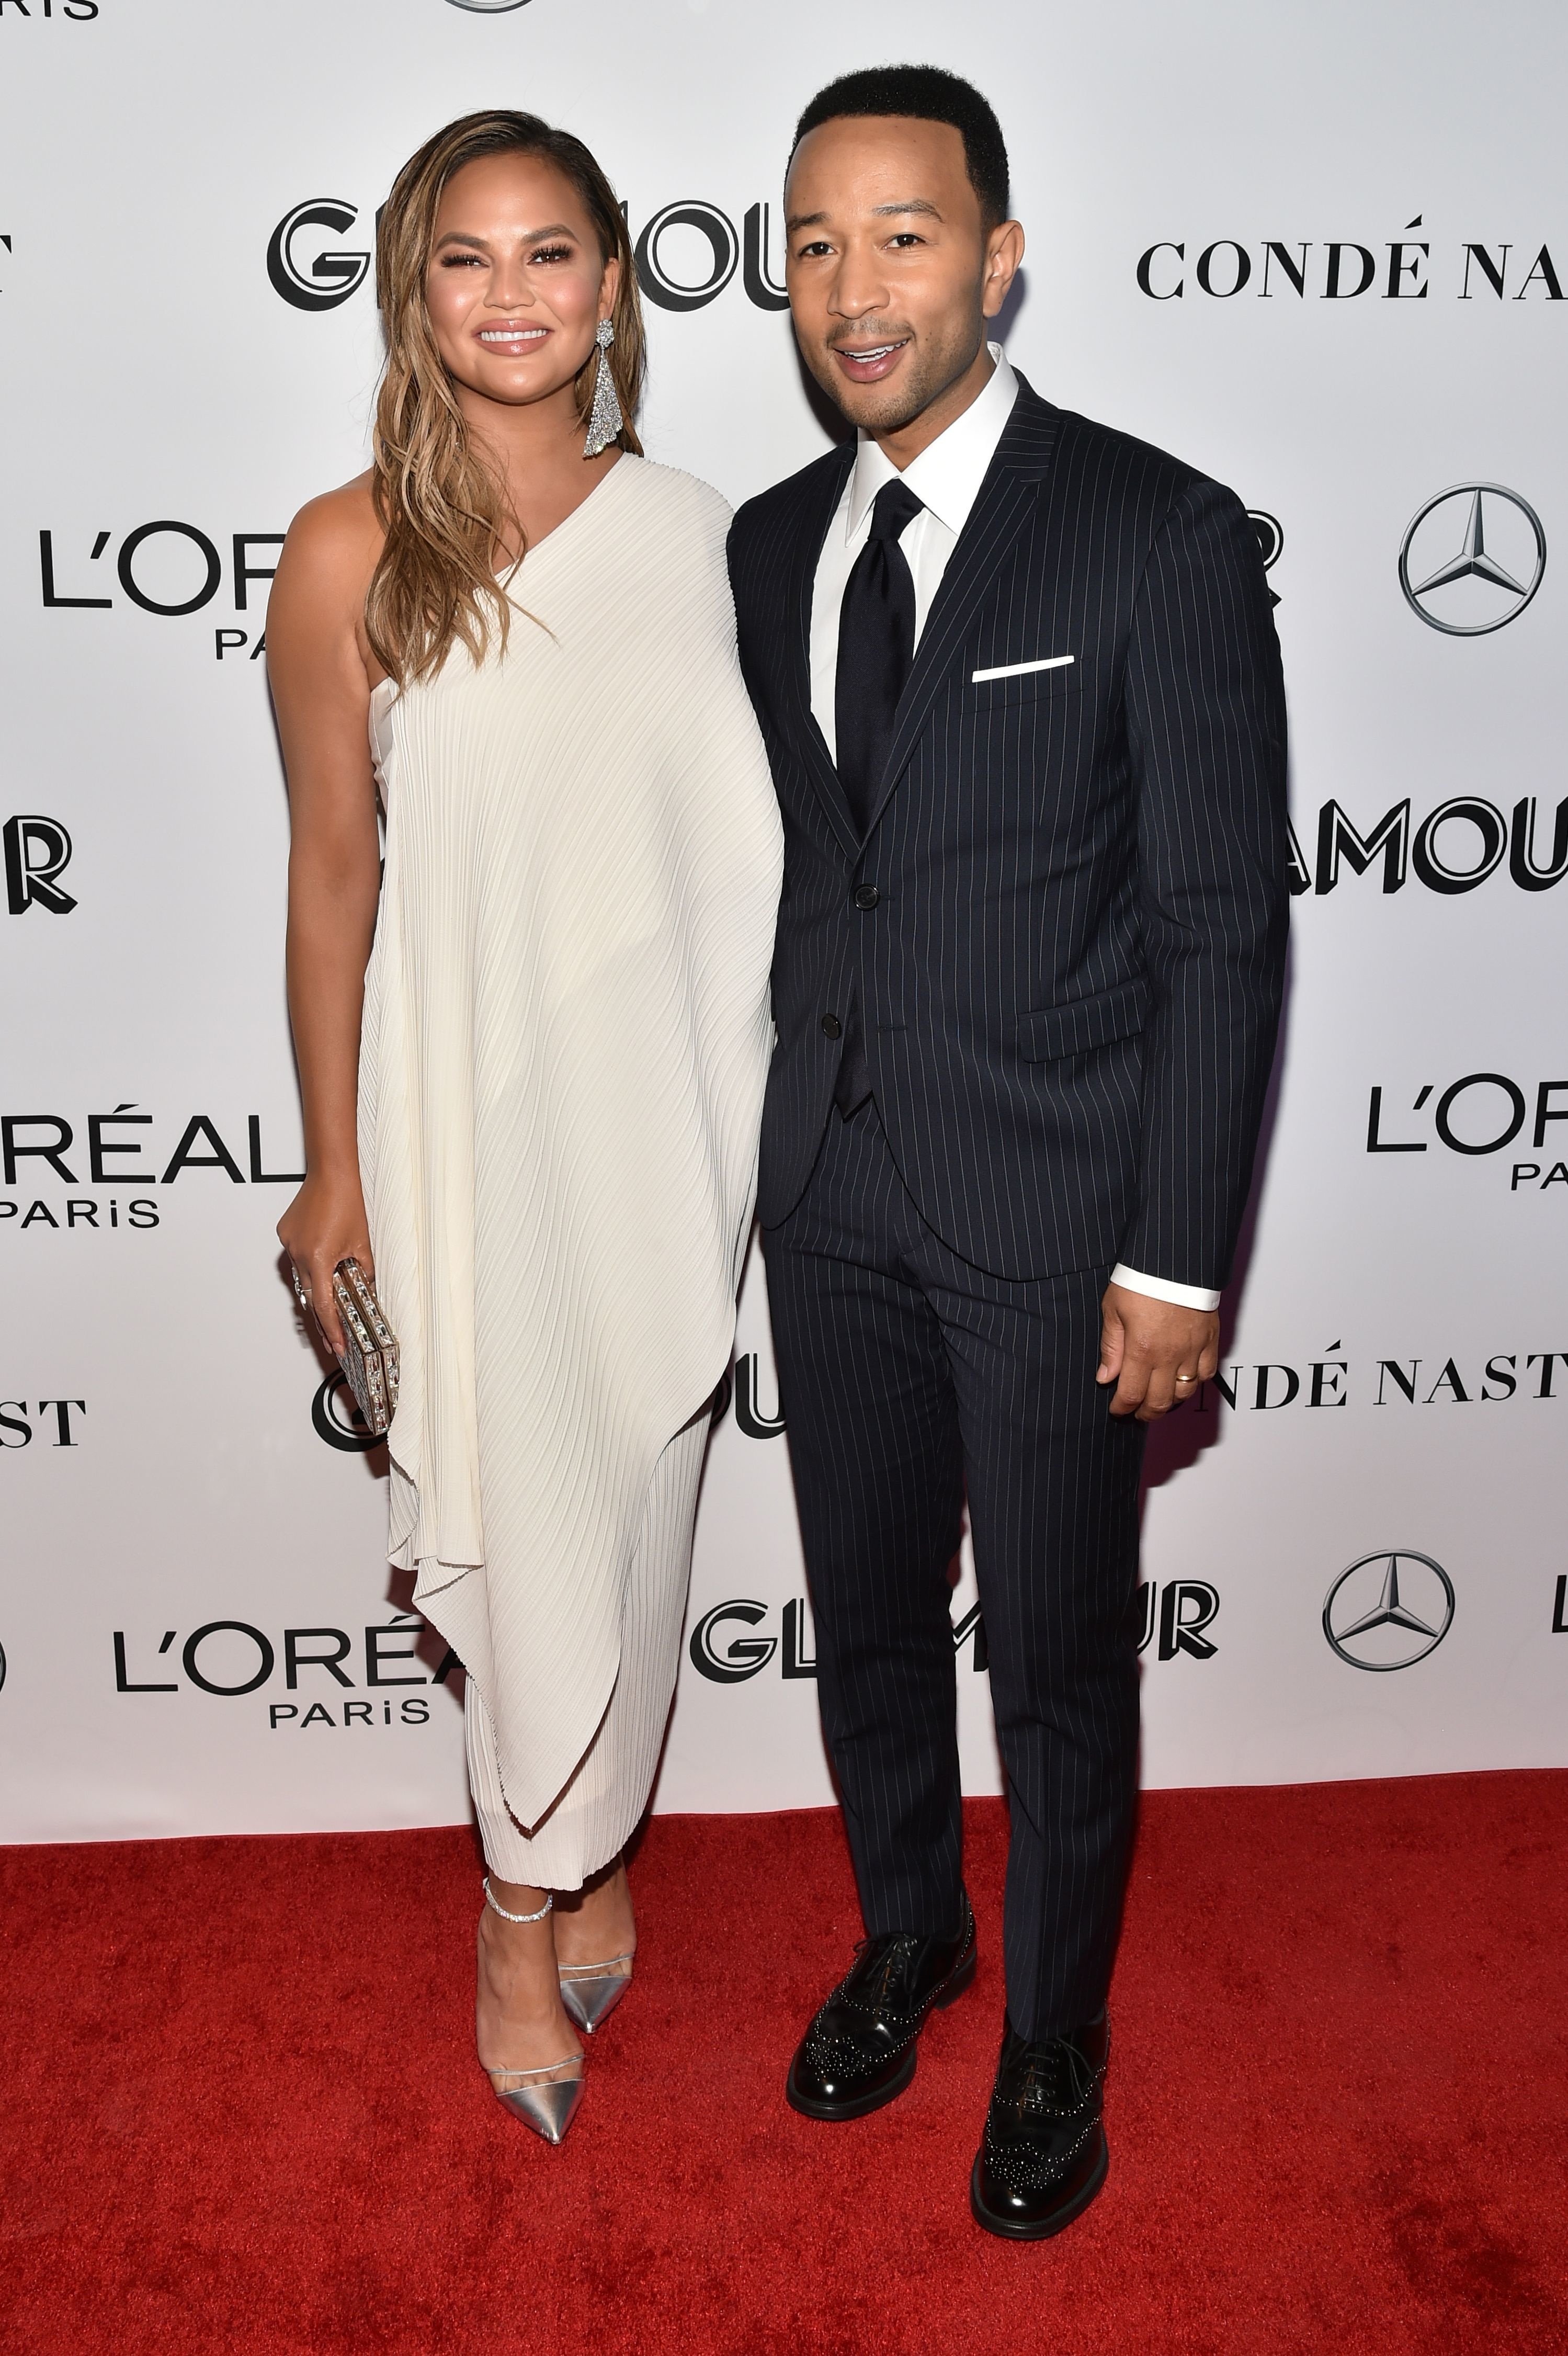 Chrissy Teigen and John Legend attend the Glamour's 28th annual Woman of the Year Awards in New York City on Nov. 12, 2018.